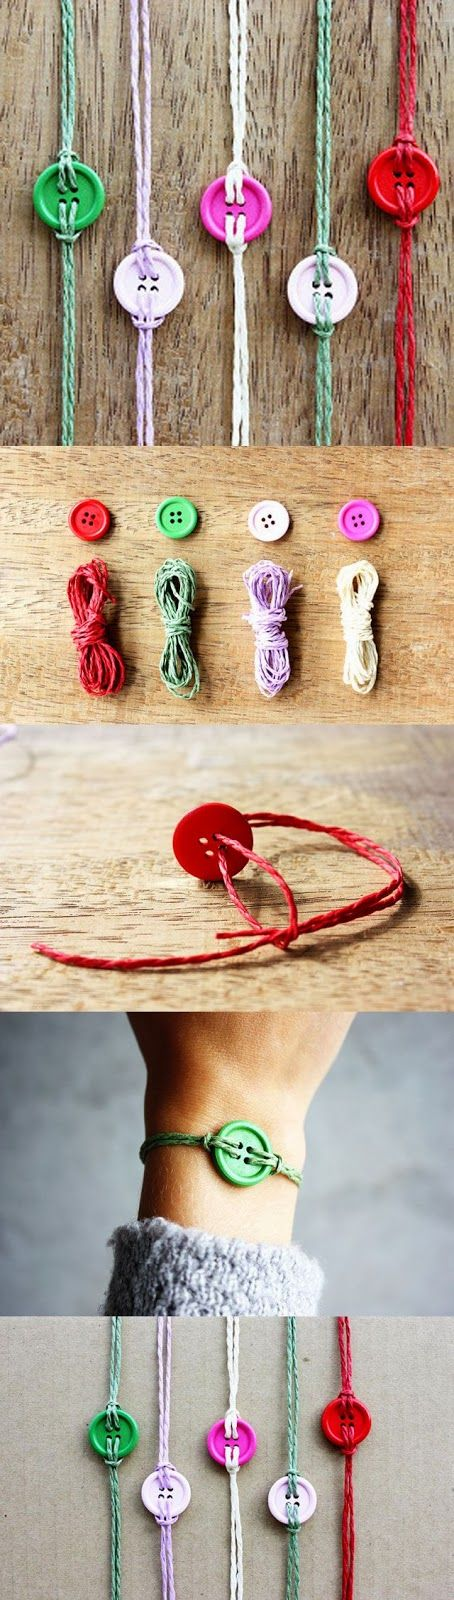 Easy DIY Crafts: Cute idea for guest gifts at a Cute As A Button baby shower!